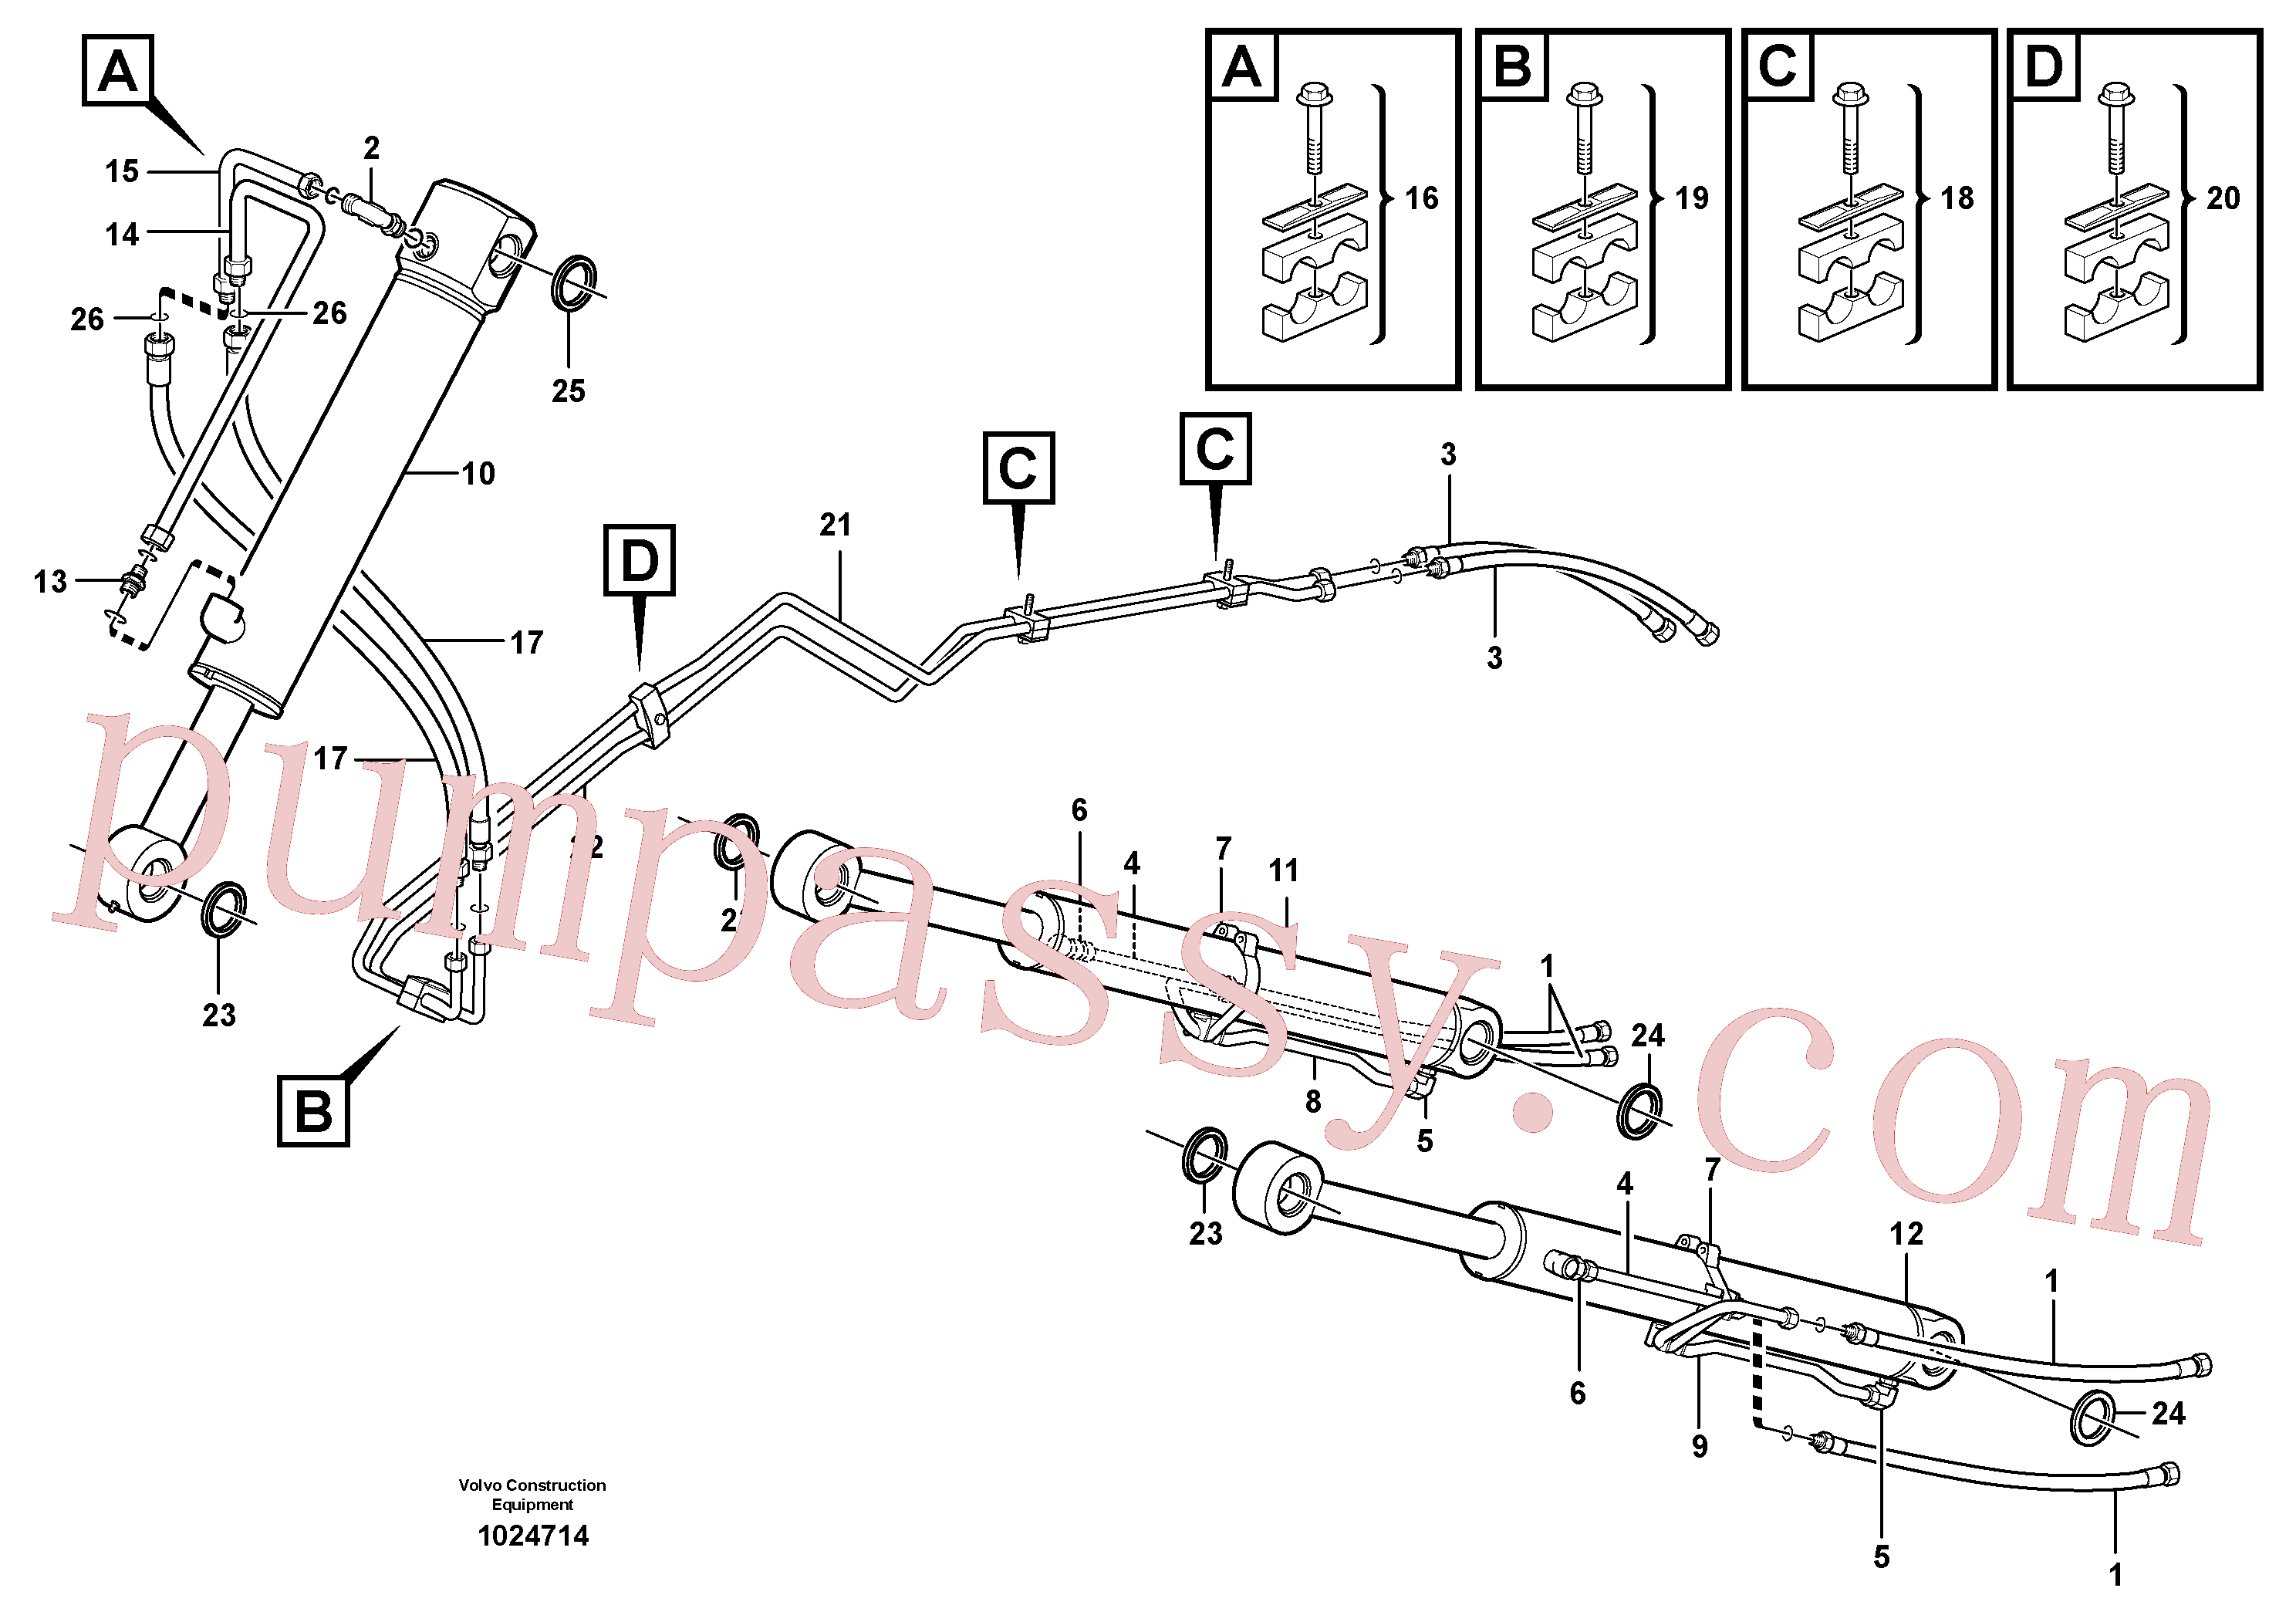 CH127A-1012 for Volvo Hydraulic system, loader(1024714 assembly)